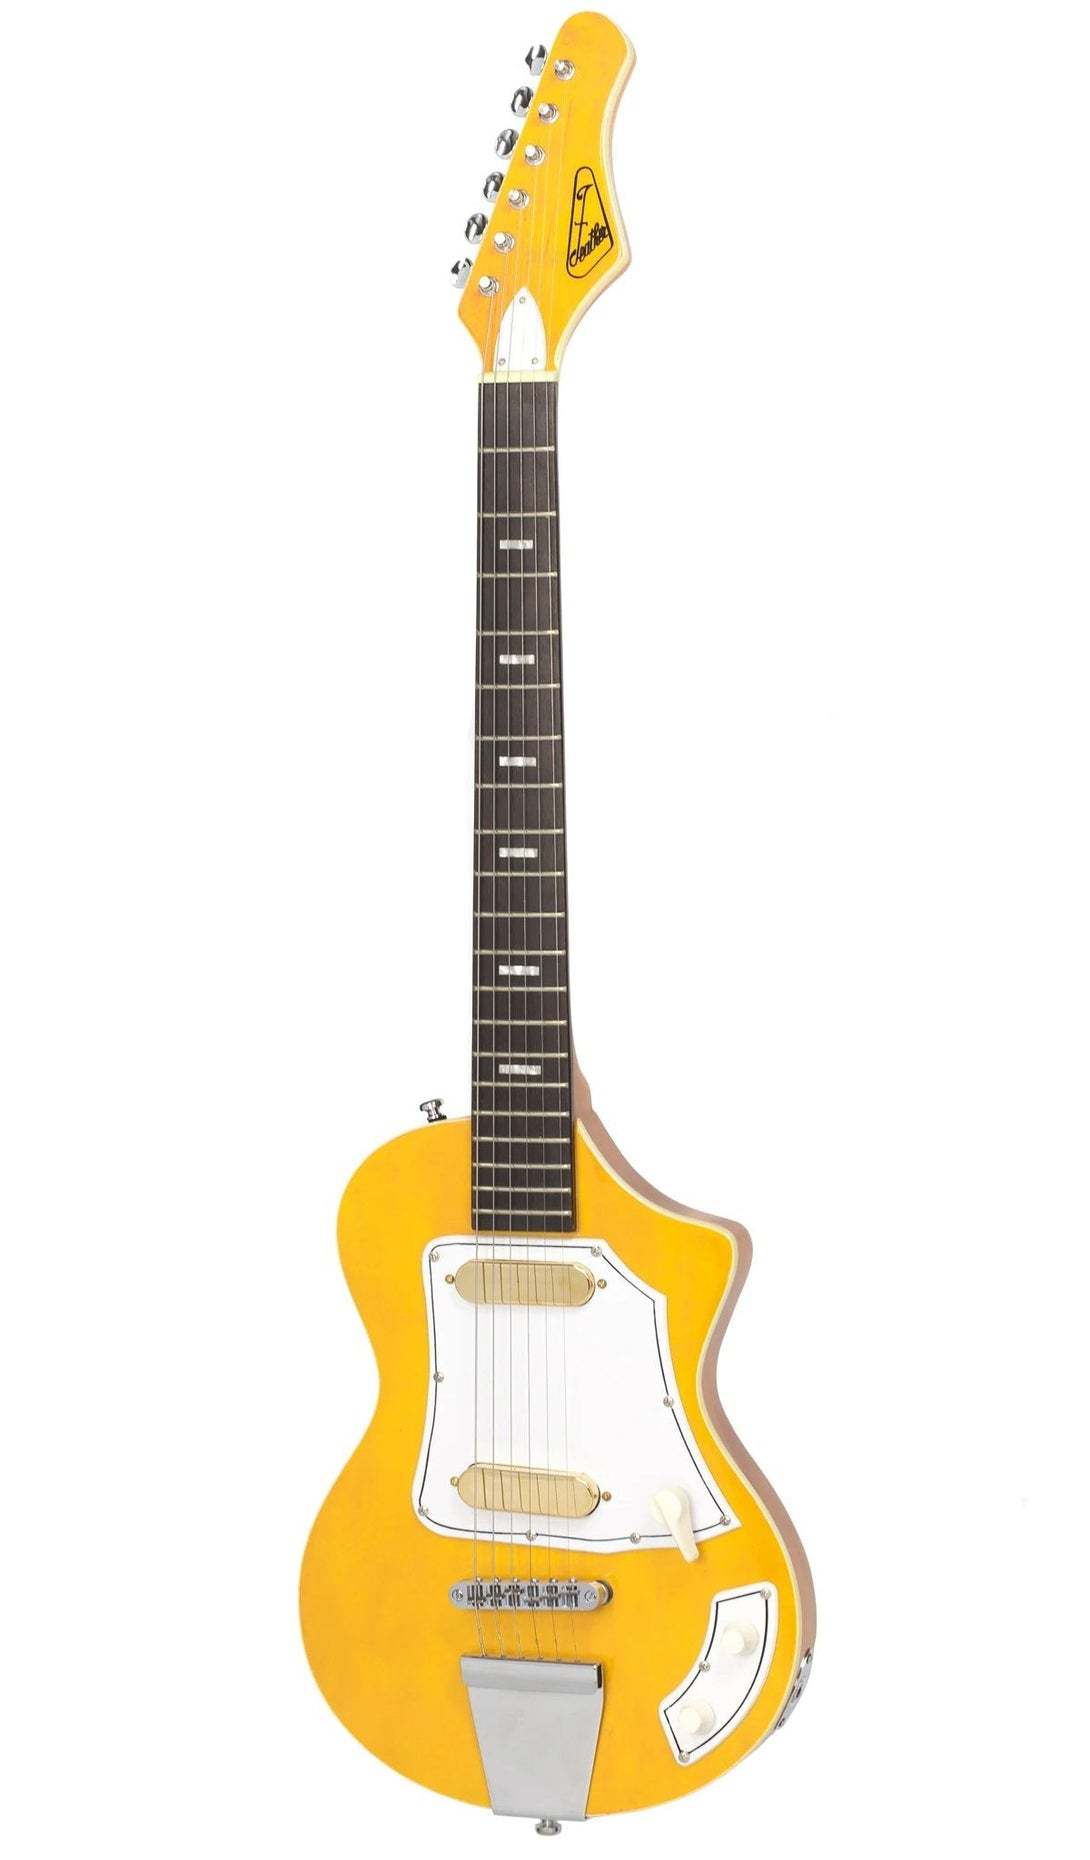 Eastwood Guitars LG50 Blonde Angled